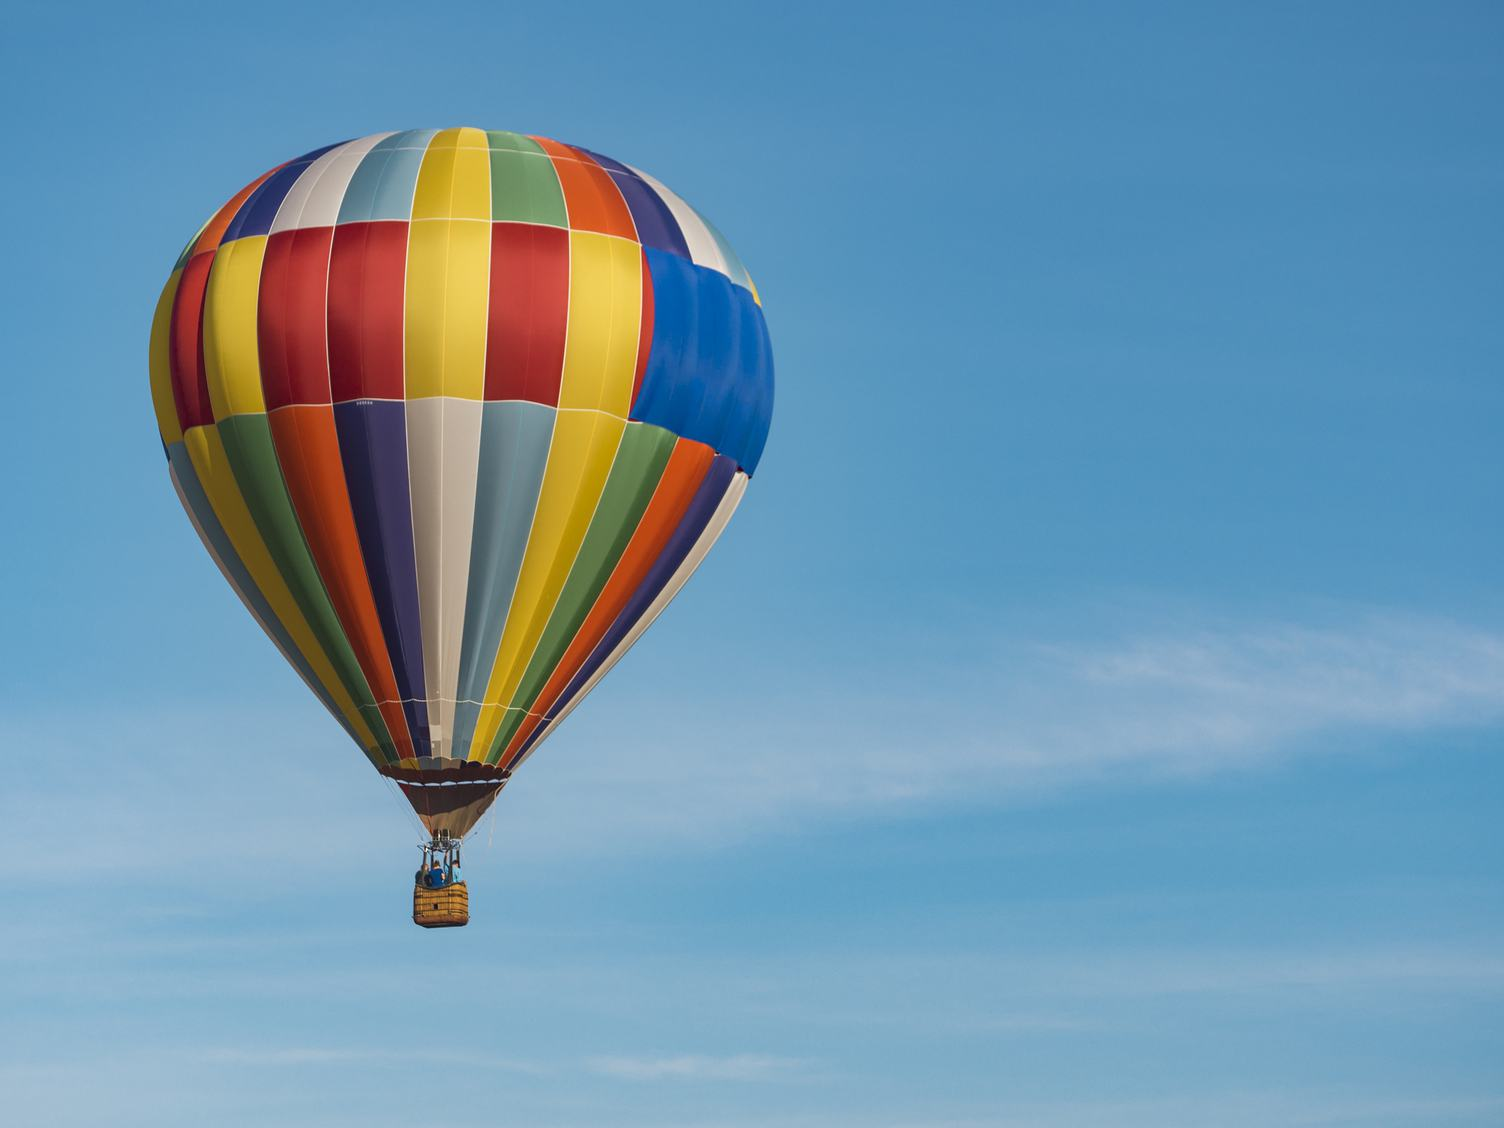 Hot-Air Balloon against Blue Sky